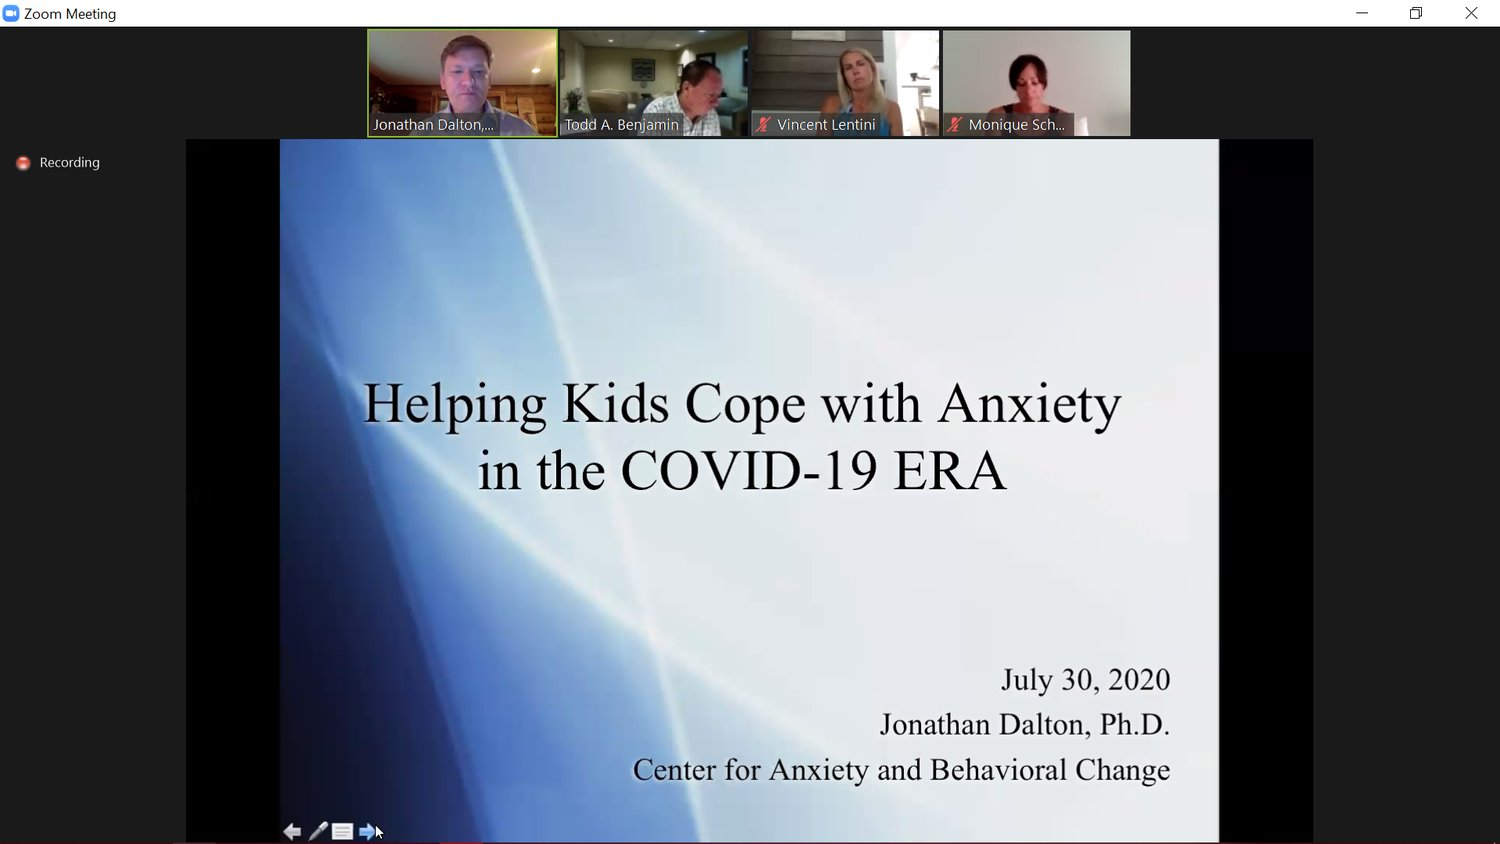 The North Merrick School District hosted a webinar on July 30 with guest Dr. Jonathan Dalton, who shared tips with parents to help their kids cope with anxiety.